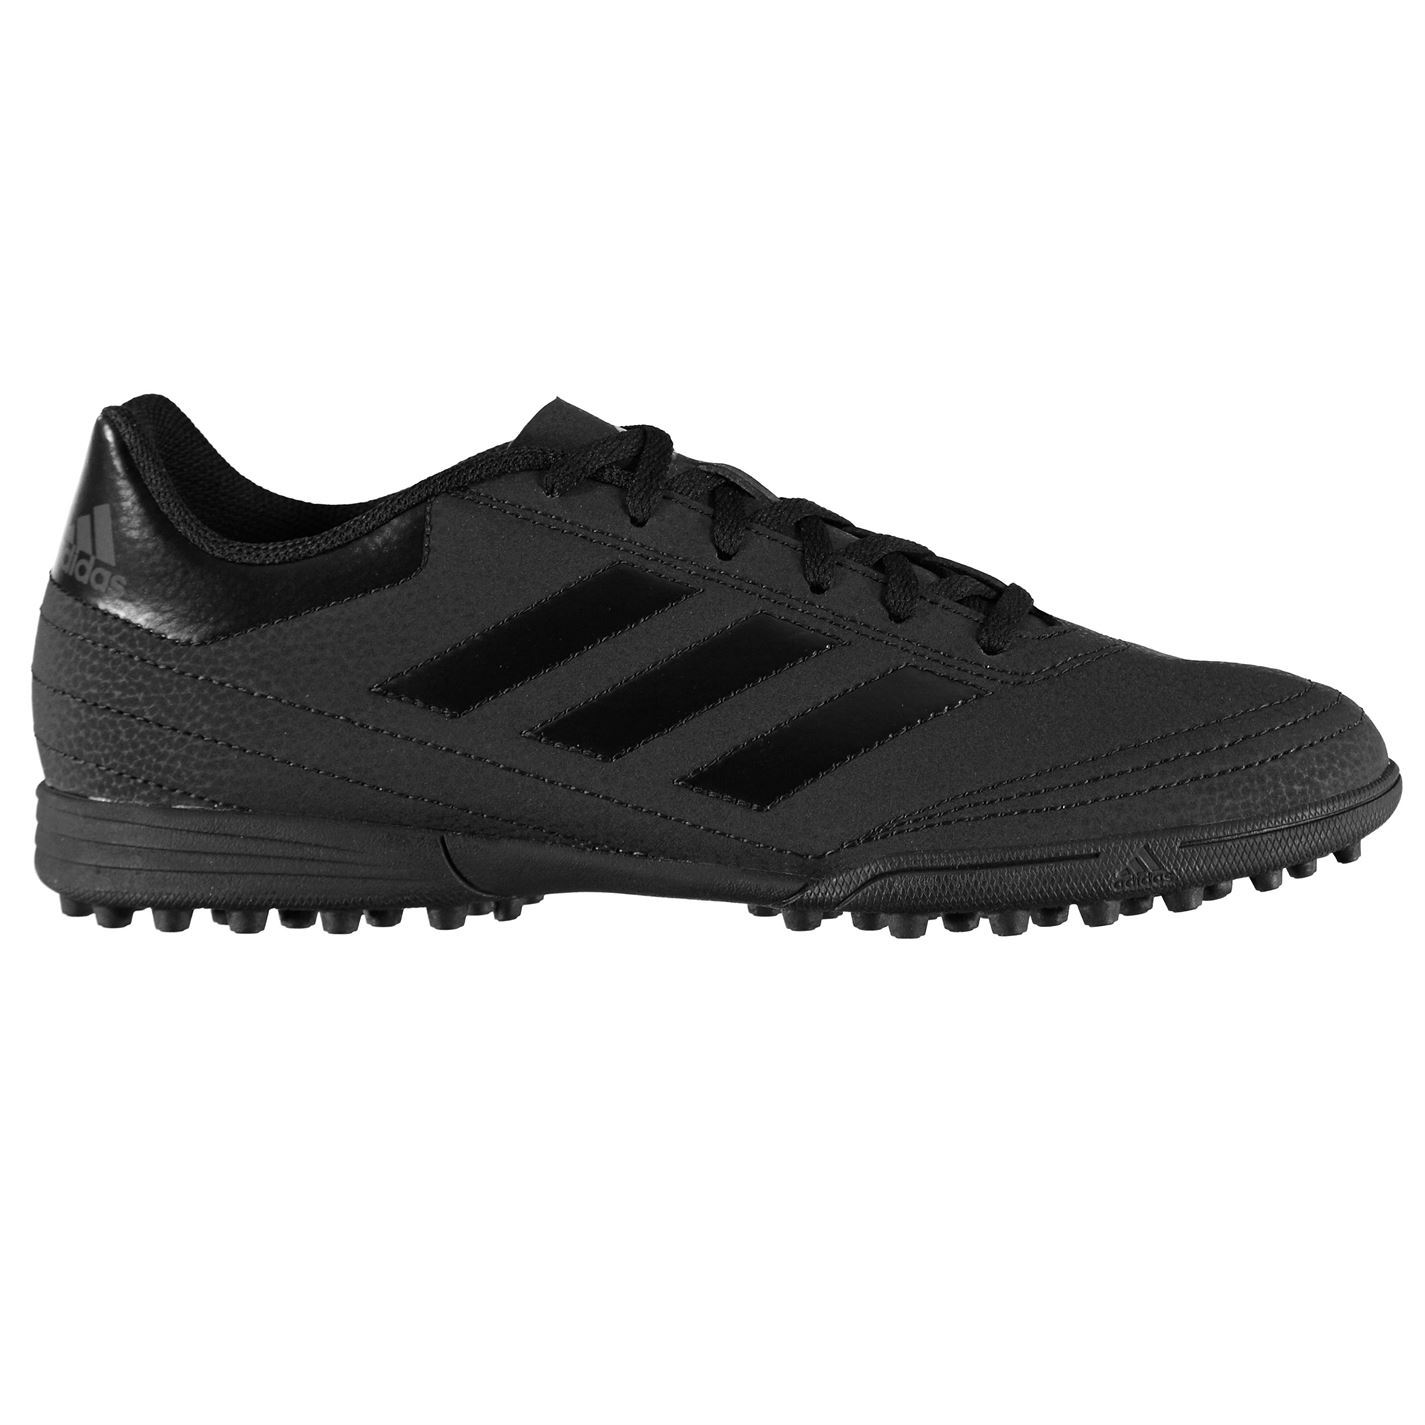 Adidas-Goletto-Astro-Turf-Football-Baskets-Pour-Homme-Football-Baskets-Chaussures miniature 2